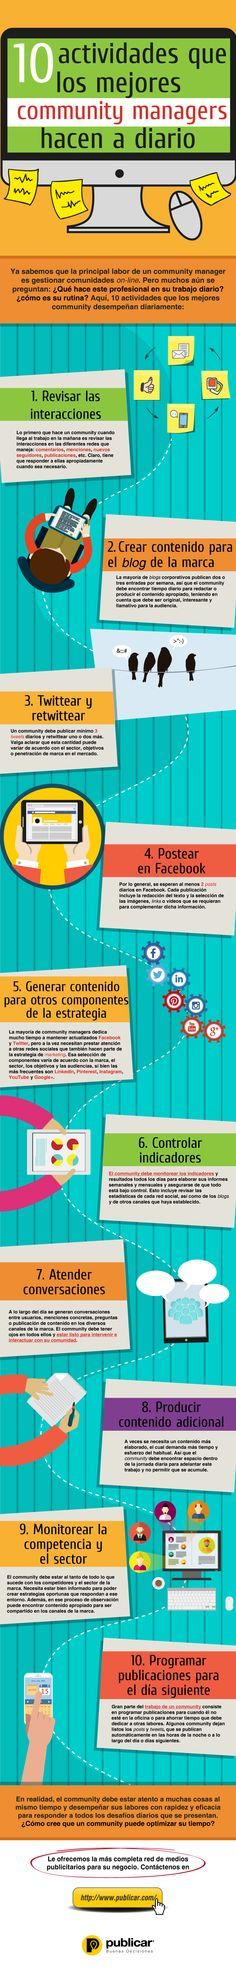 Mobile marketing may be a great source of major or could prove to be very lucrative. These tips will give you an inside look at the world of mobile marketing in order for you to have success. Social Media Digital Marketing, Social Web, Facebook Marketing, Inbound Marketing, Business Marketing, Online Marketing, Social Media Marketing, Mobile Marketing, Marketing Strategies